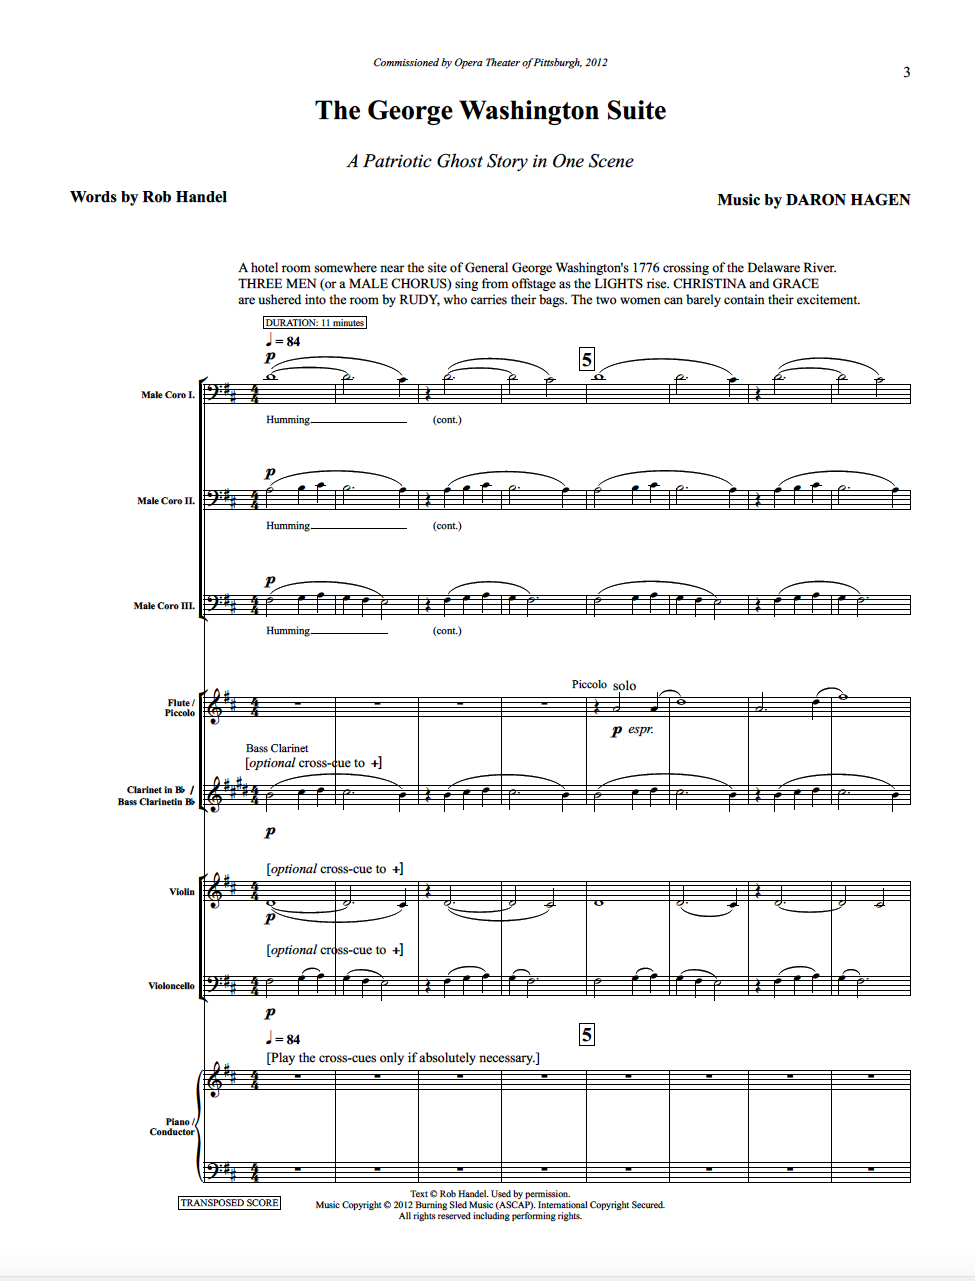 The first page of the opera's full score.